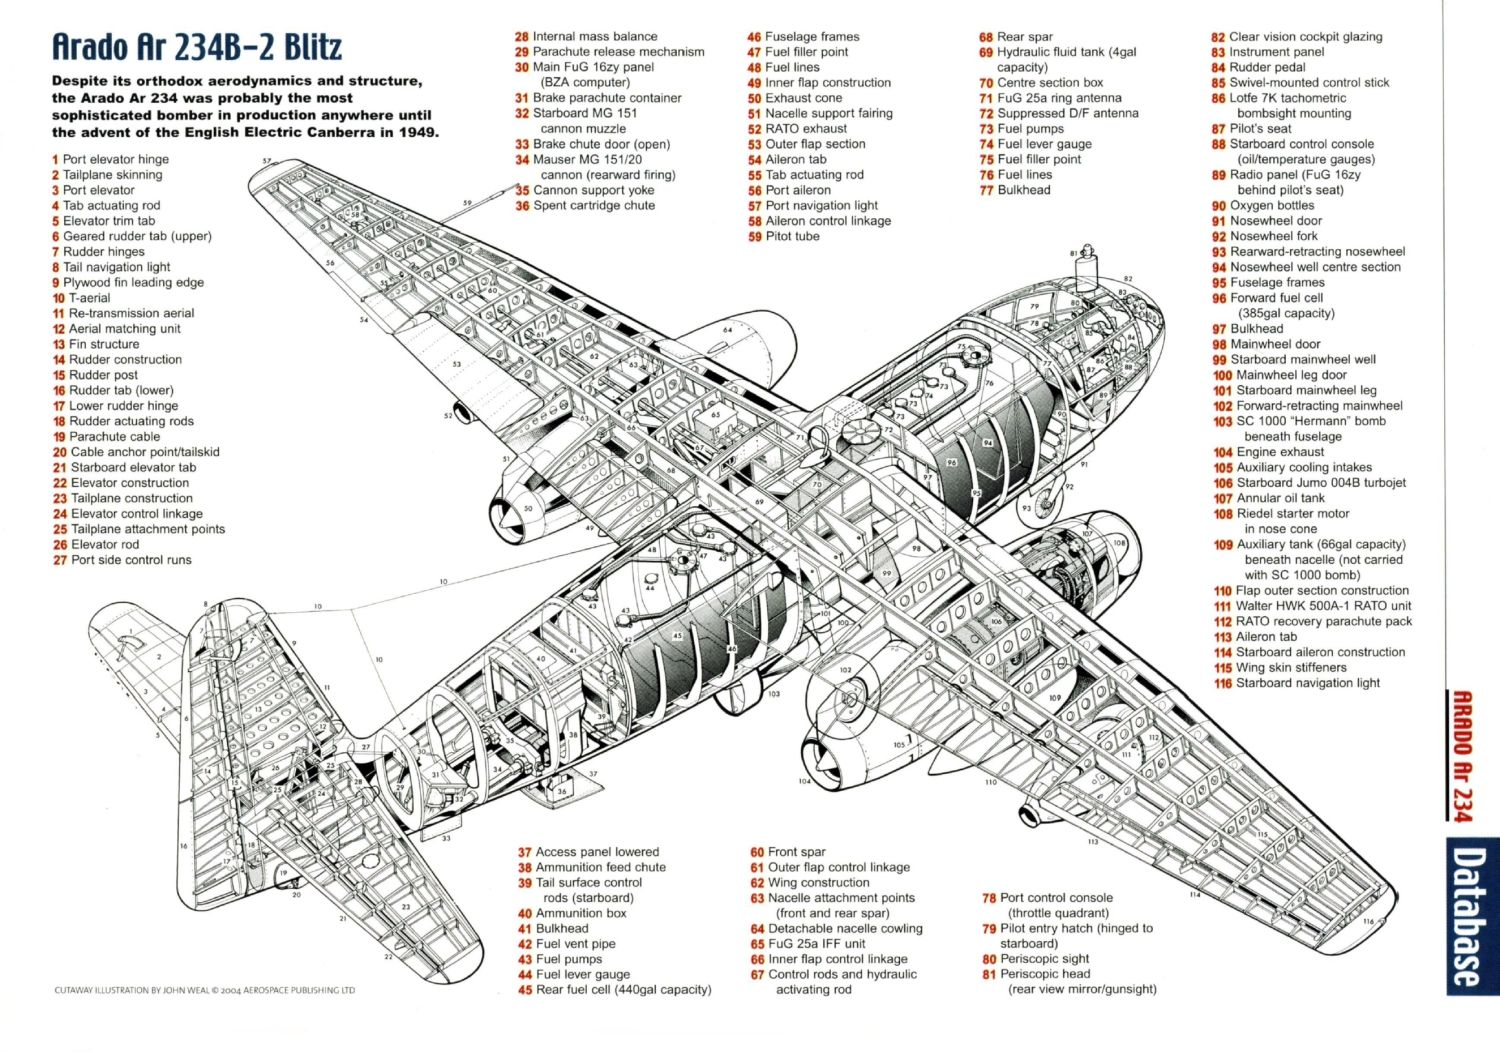 Arado Used A Lot Of Resources To Build The He 177 For